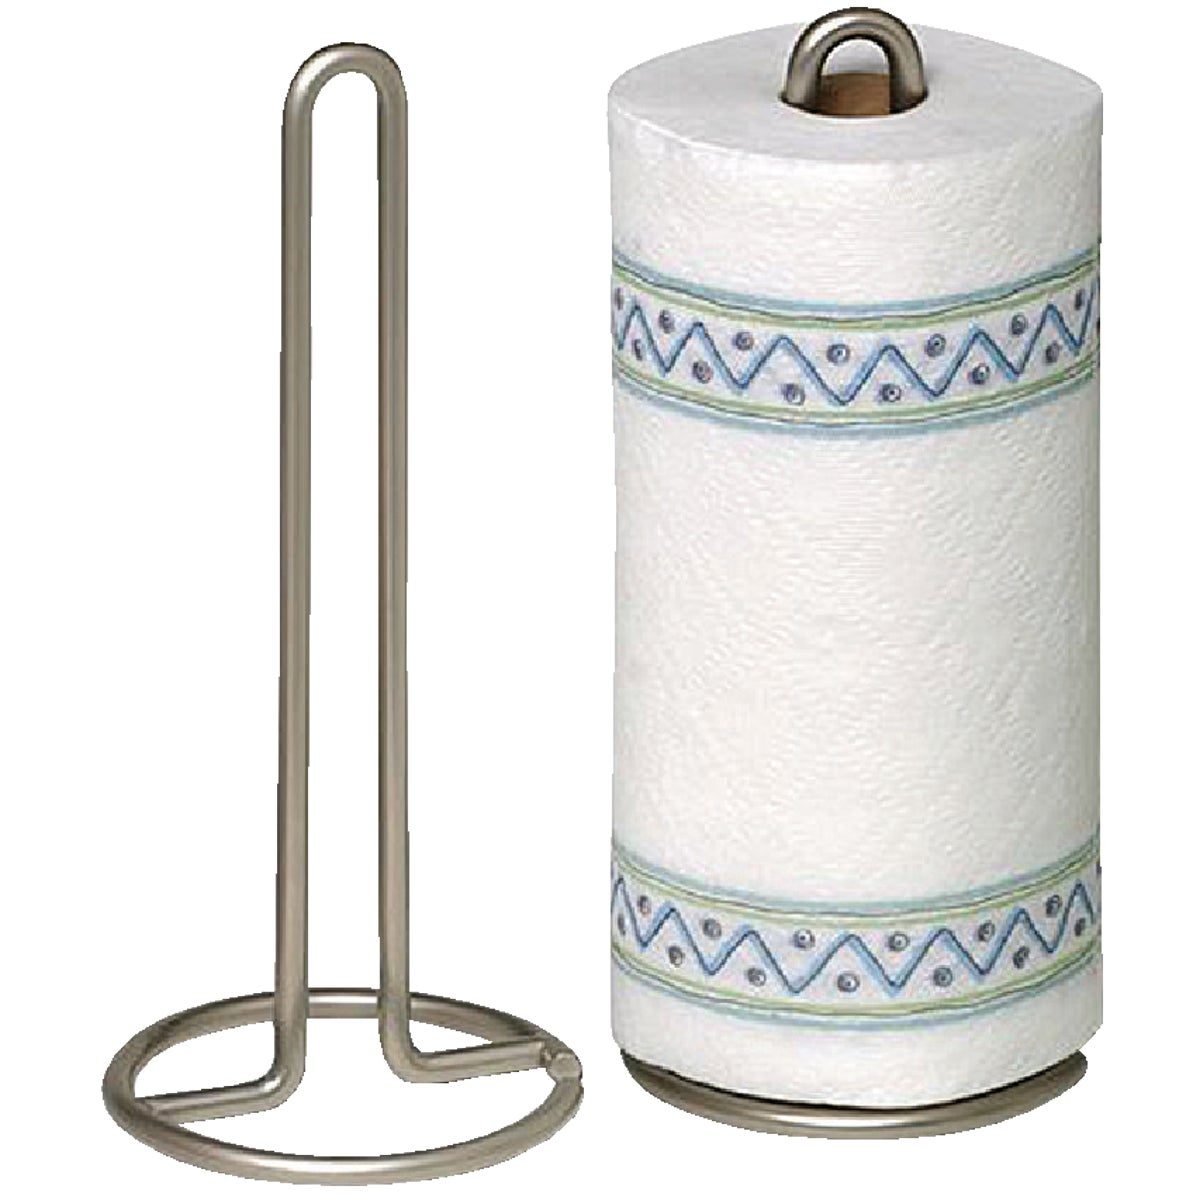 EURO P TOWEL HOLDER - 41078 by Spectrum Diversified